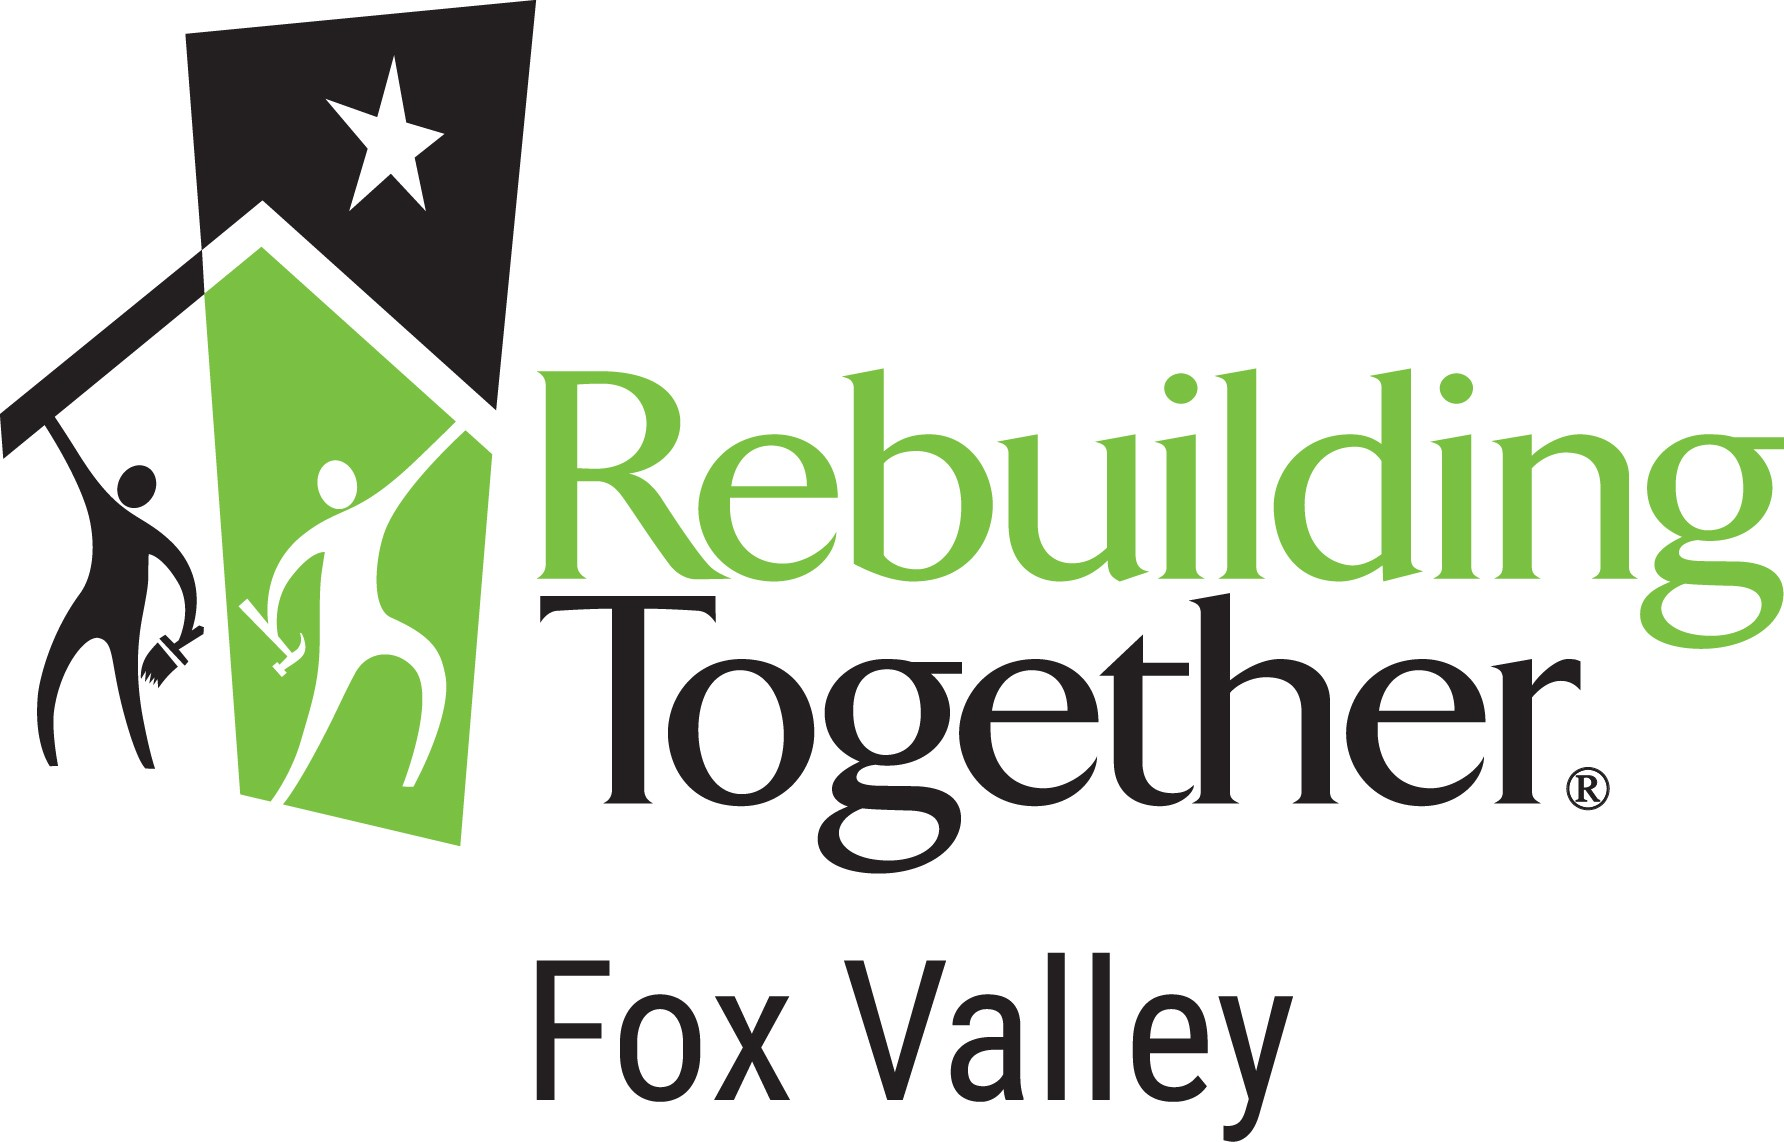 Rebuilding Together Fox Valley